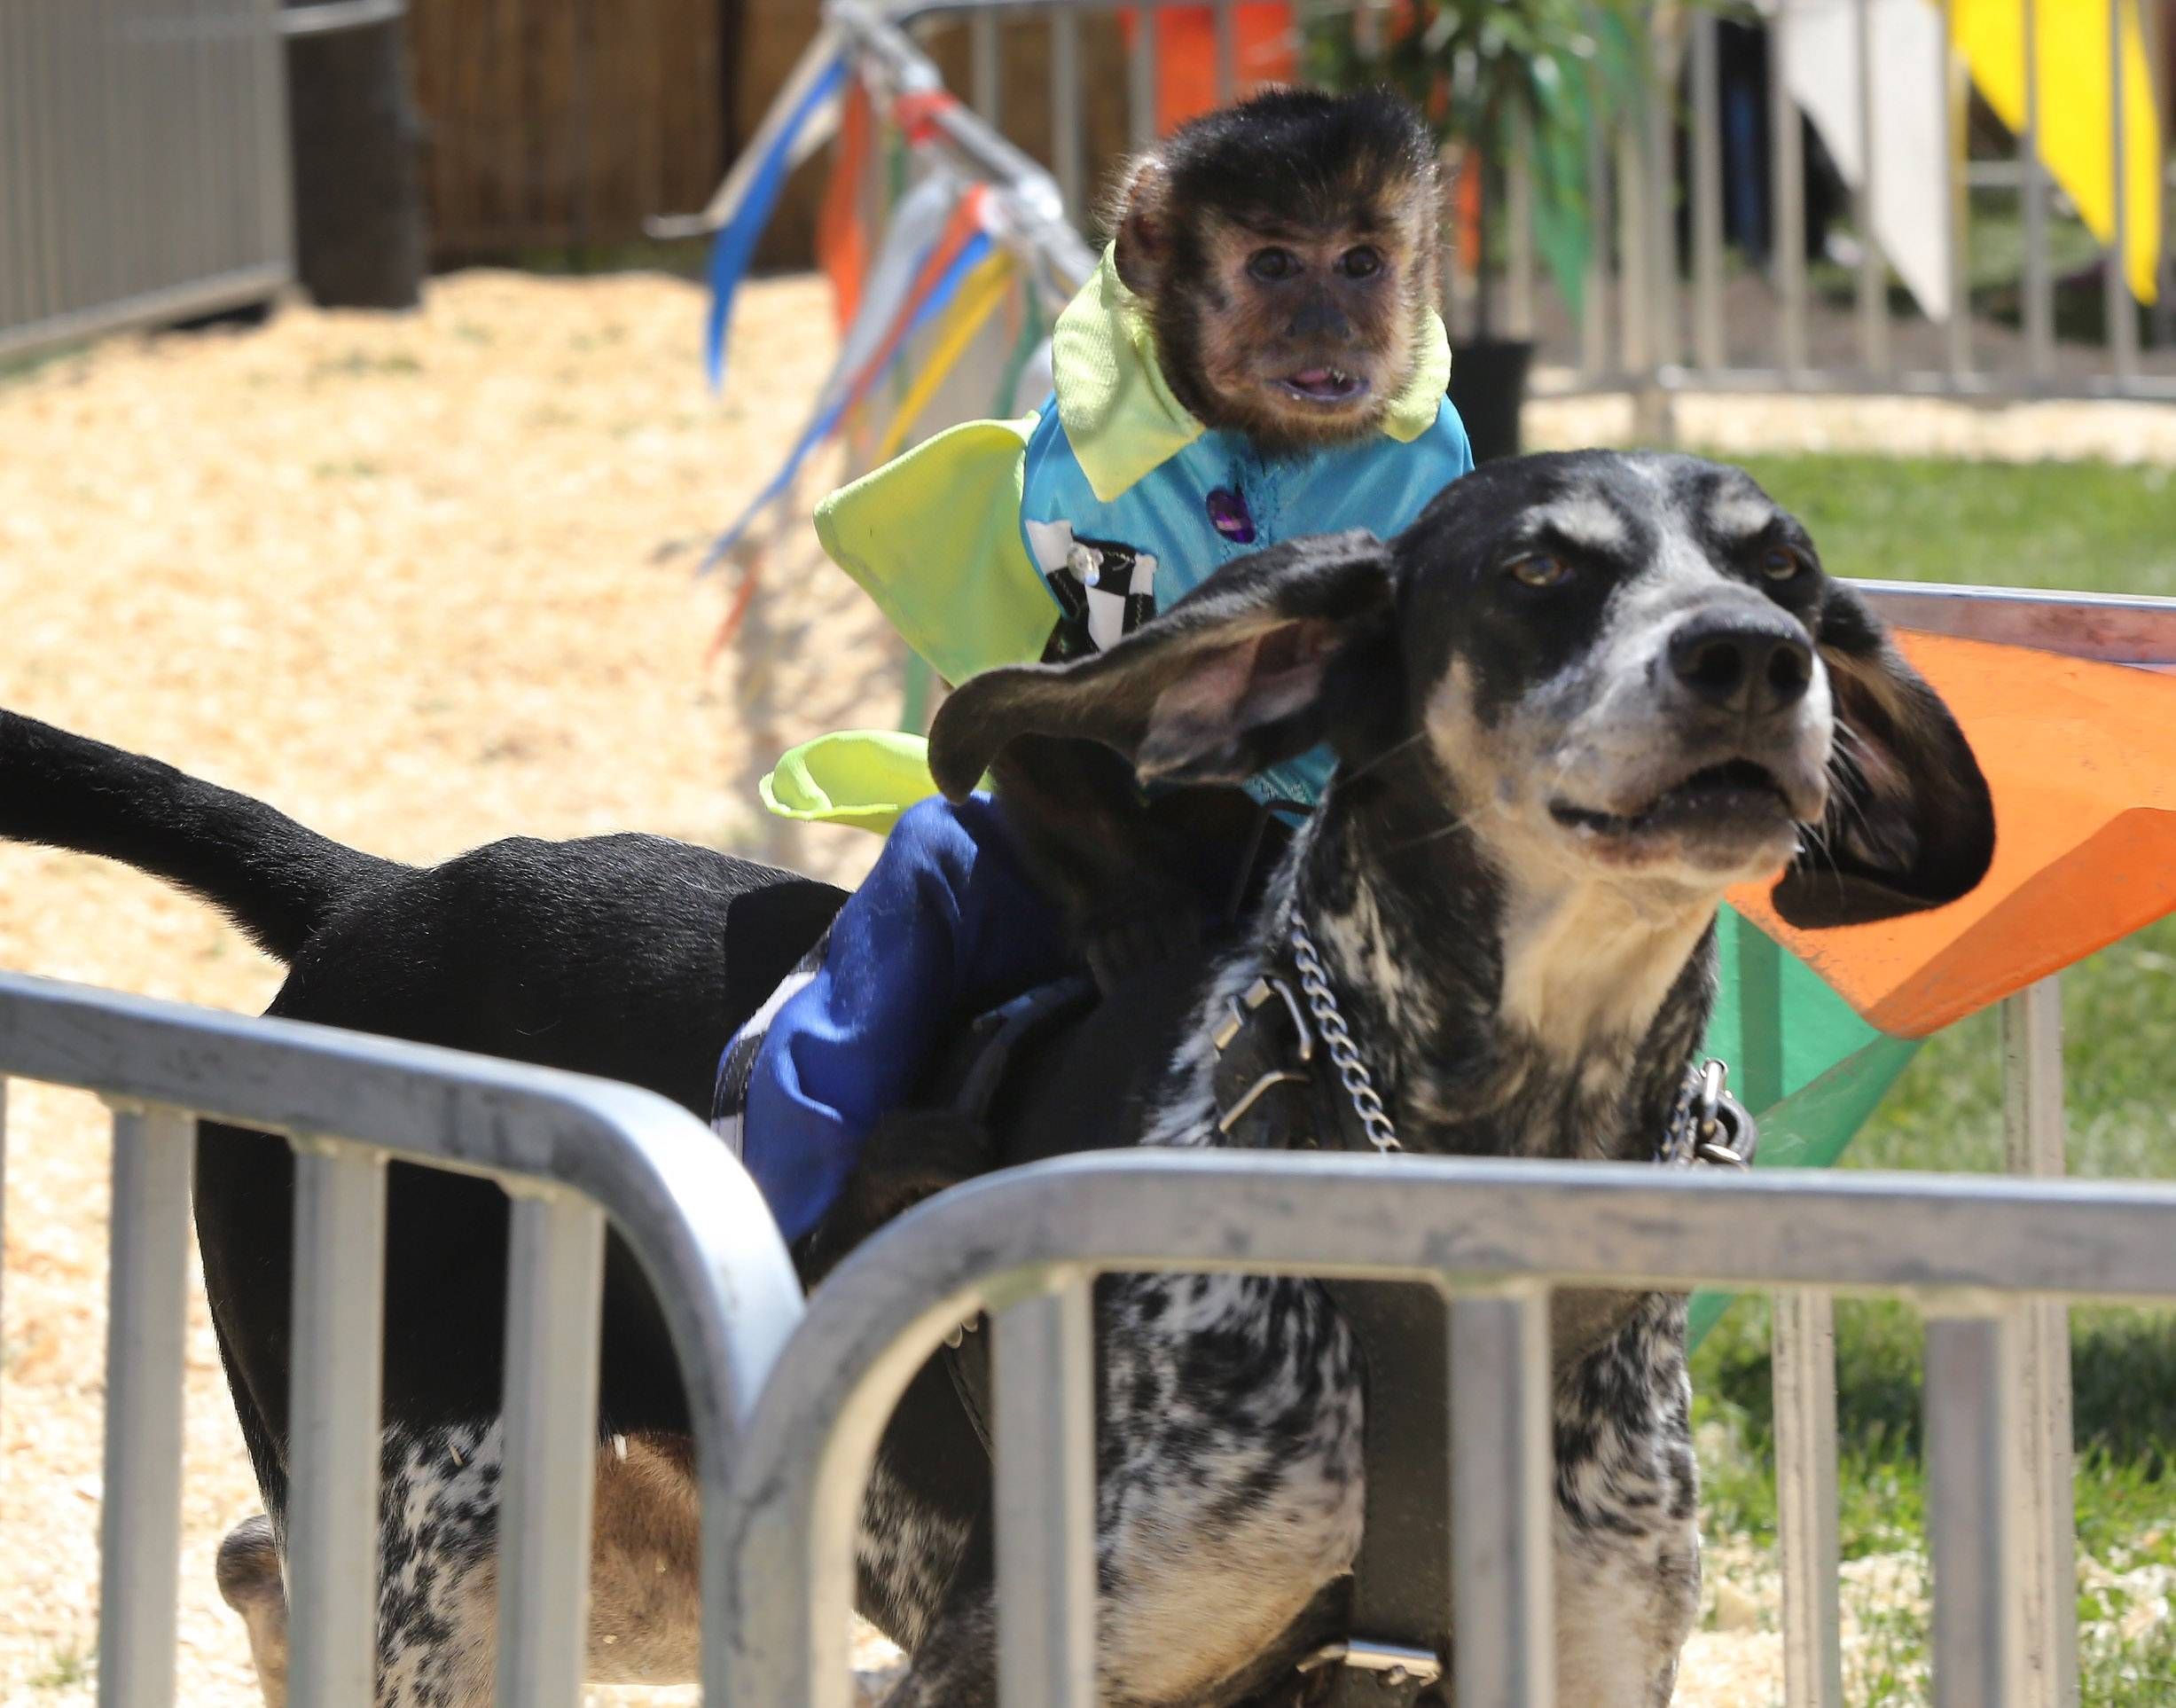 Burt, a capuchin monkey, rides Scooby Blu during the Banana Derby races Wednesday at the Lake County Fair in Grayslake. The show featured capuchin monkeys riding dogs around a track.